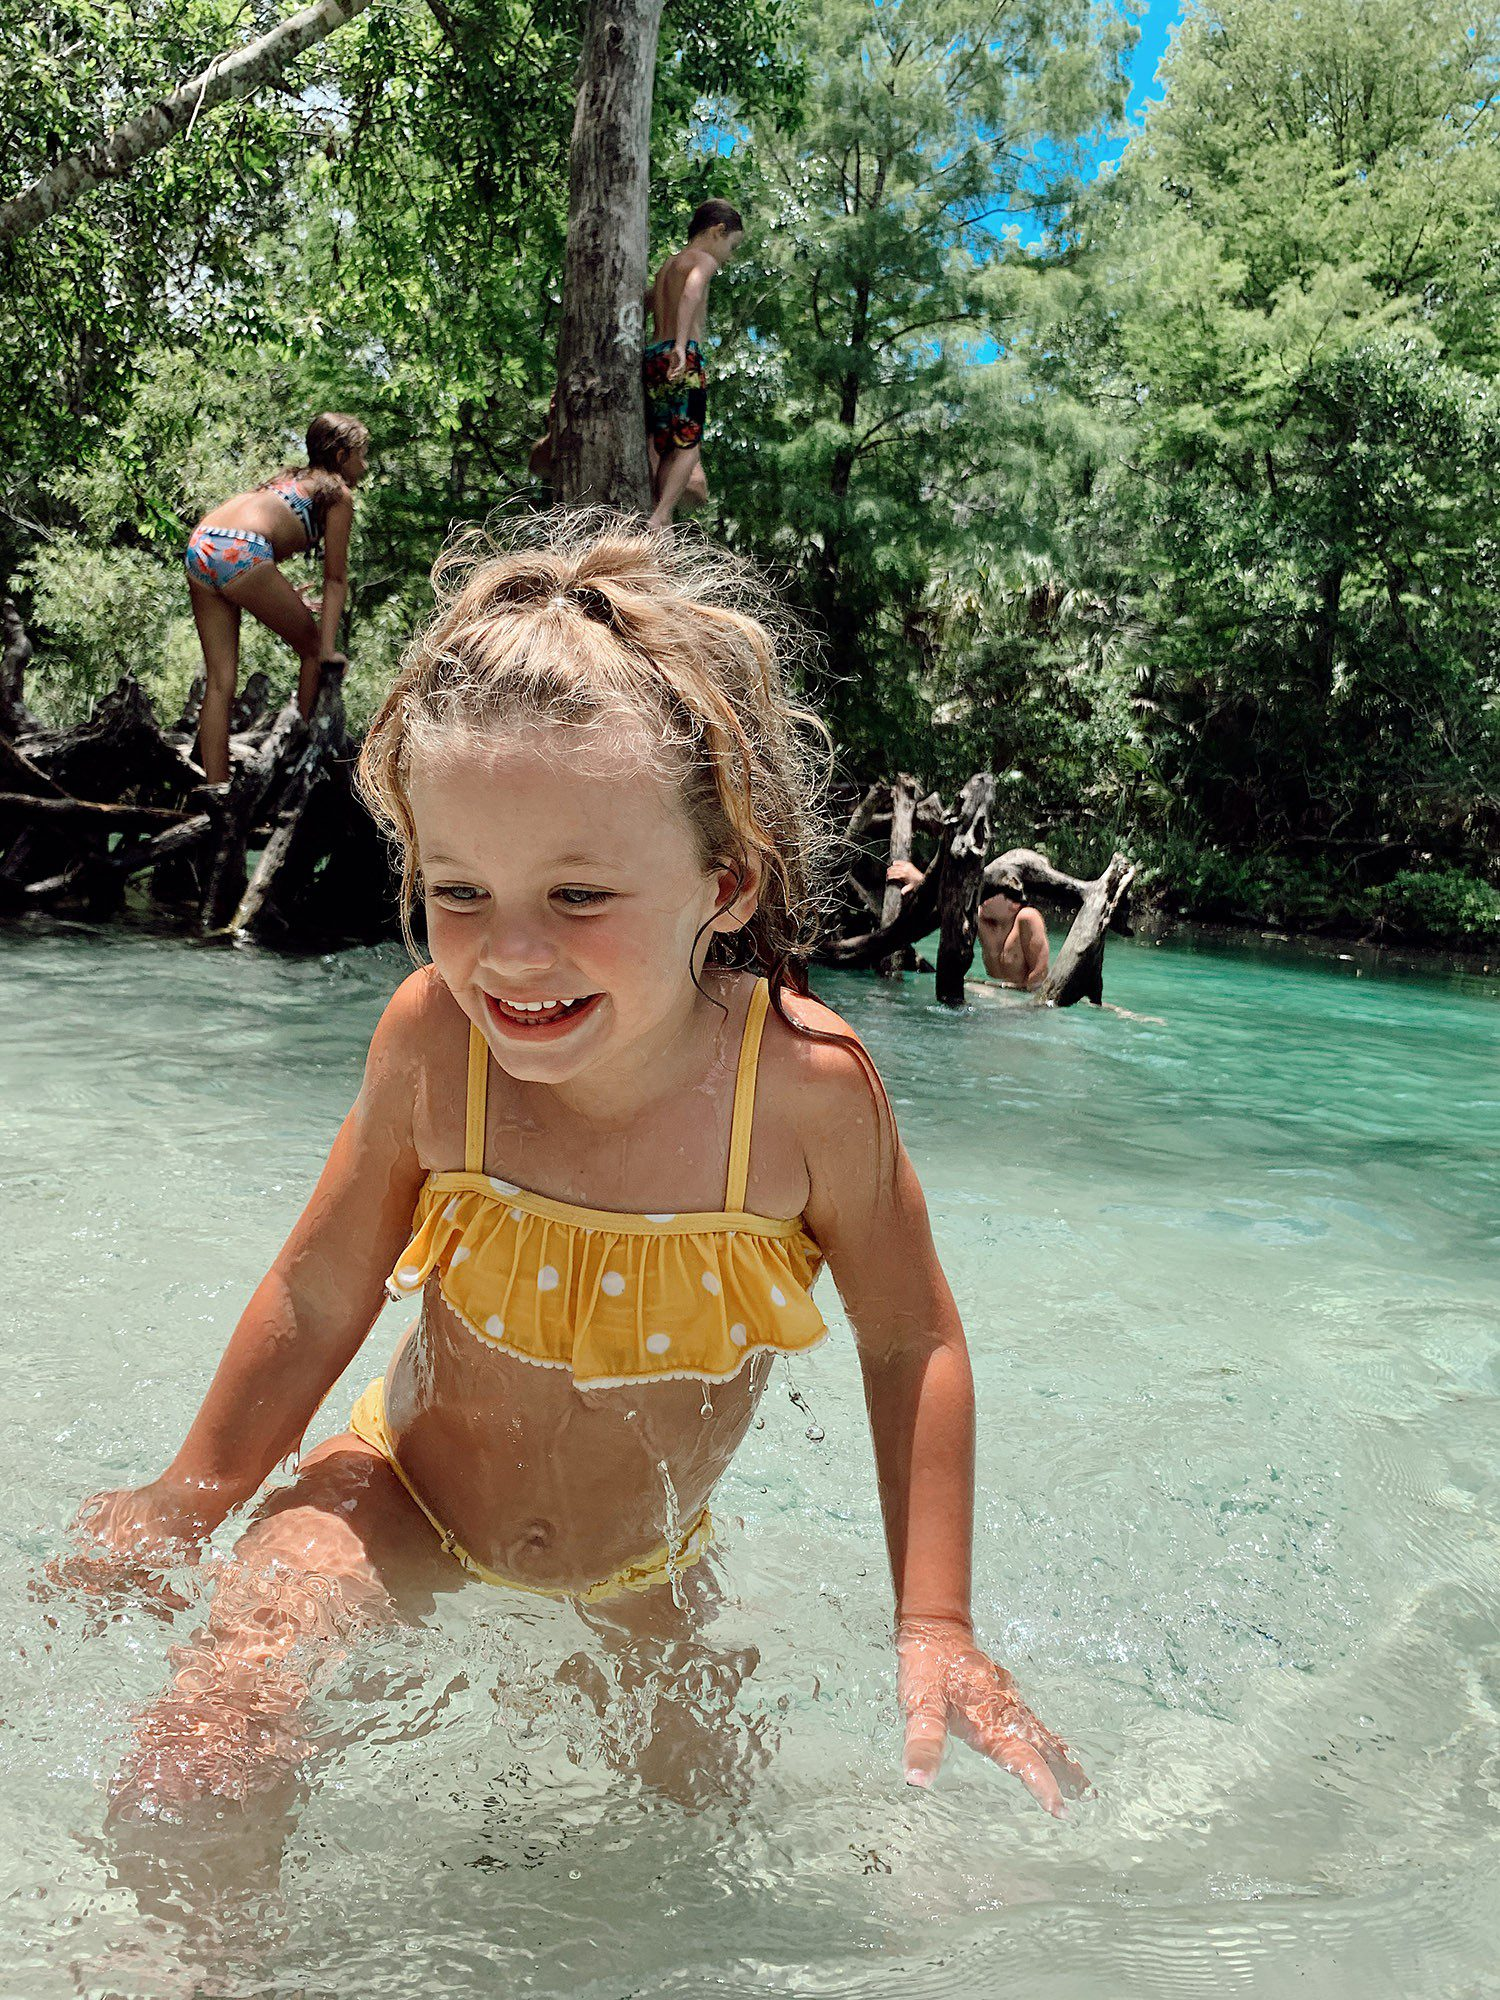 Tips for an Amazing Weeki Wachee Kayaking Florida Staycation. Visit Florida Travel ideas from top lifestyle blogger Tabitha Blue of Fresh Mommy Blog. | Weeki Wachee Kayaking by popular Florida blog, Fresh Mommy Blog: image of a little girl wearing a yellow and white polka dot bikini and playing in the water.